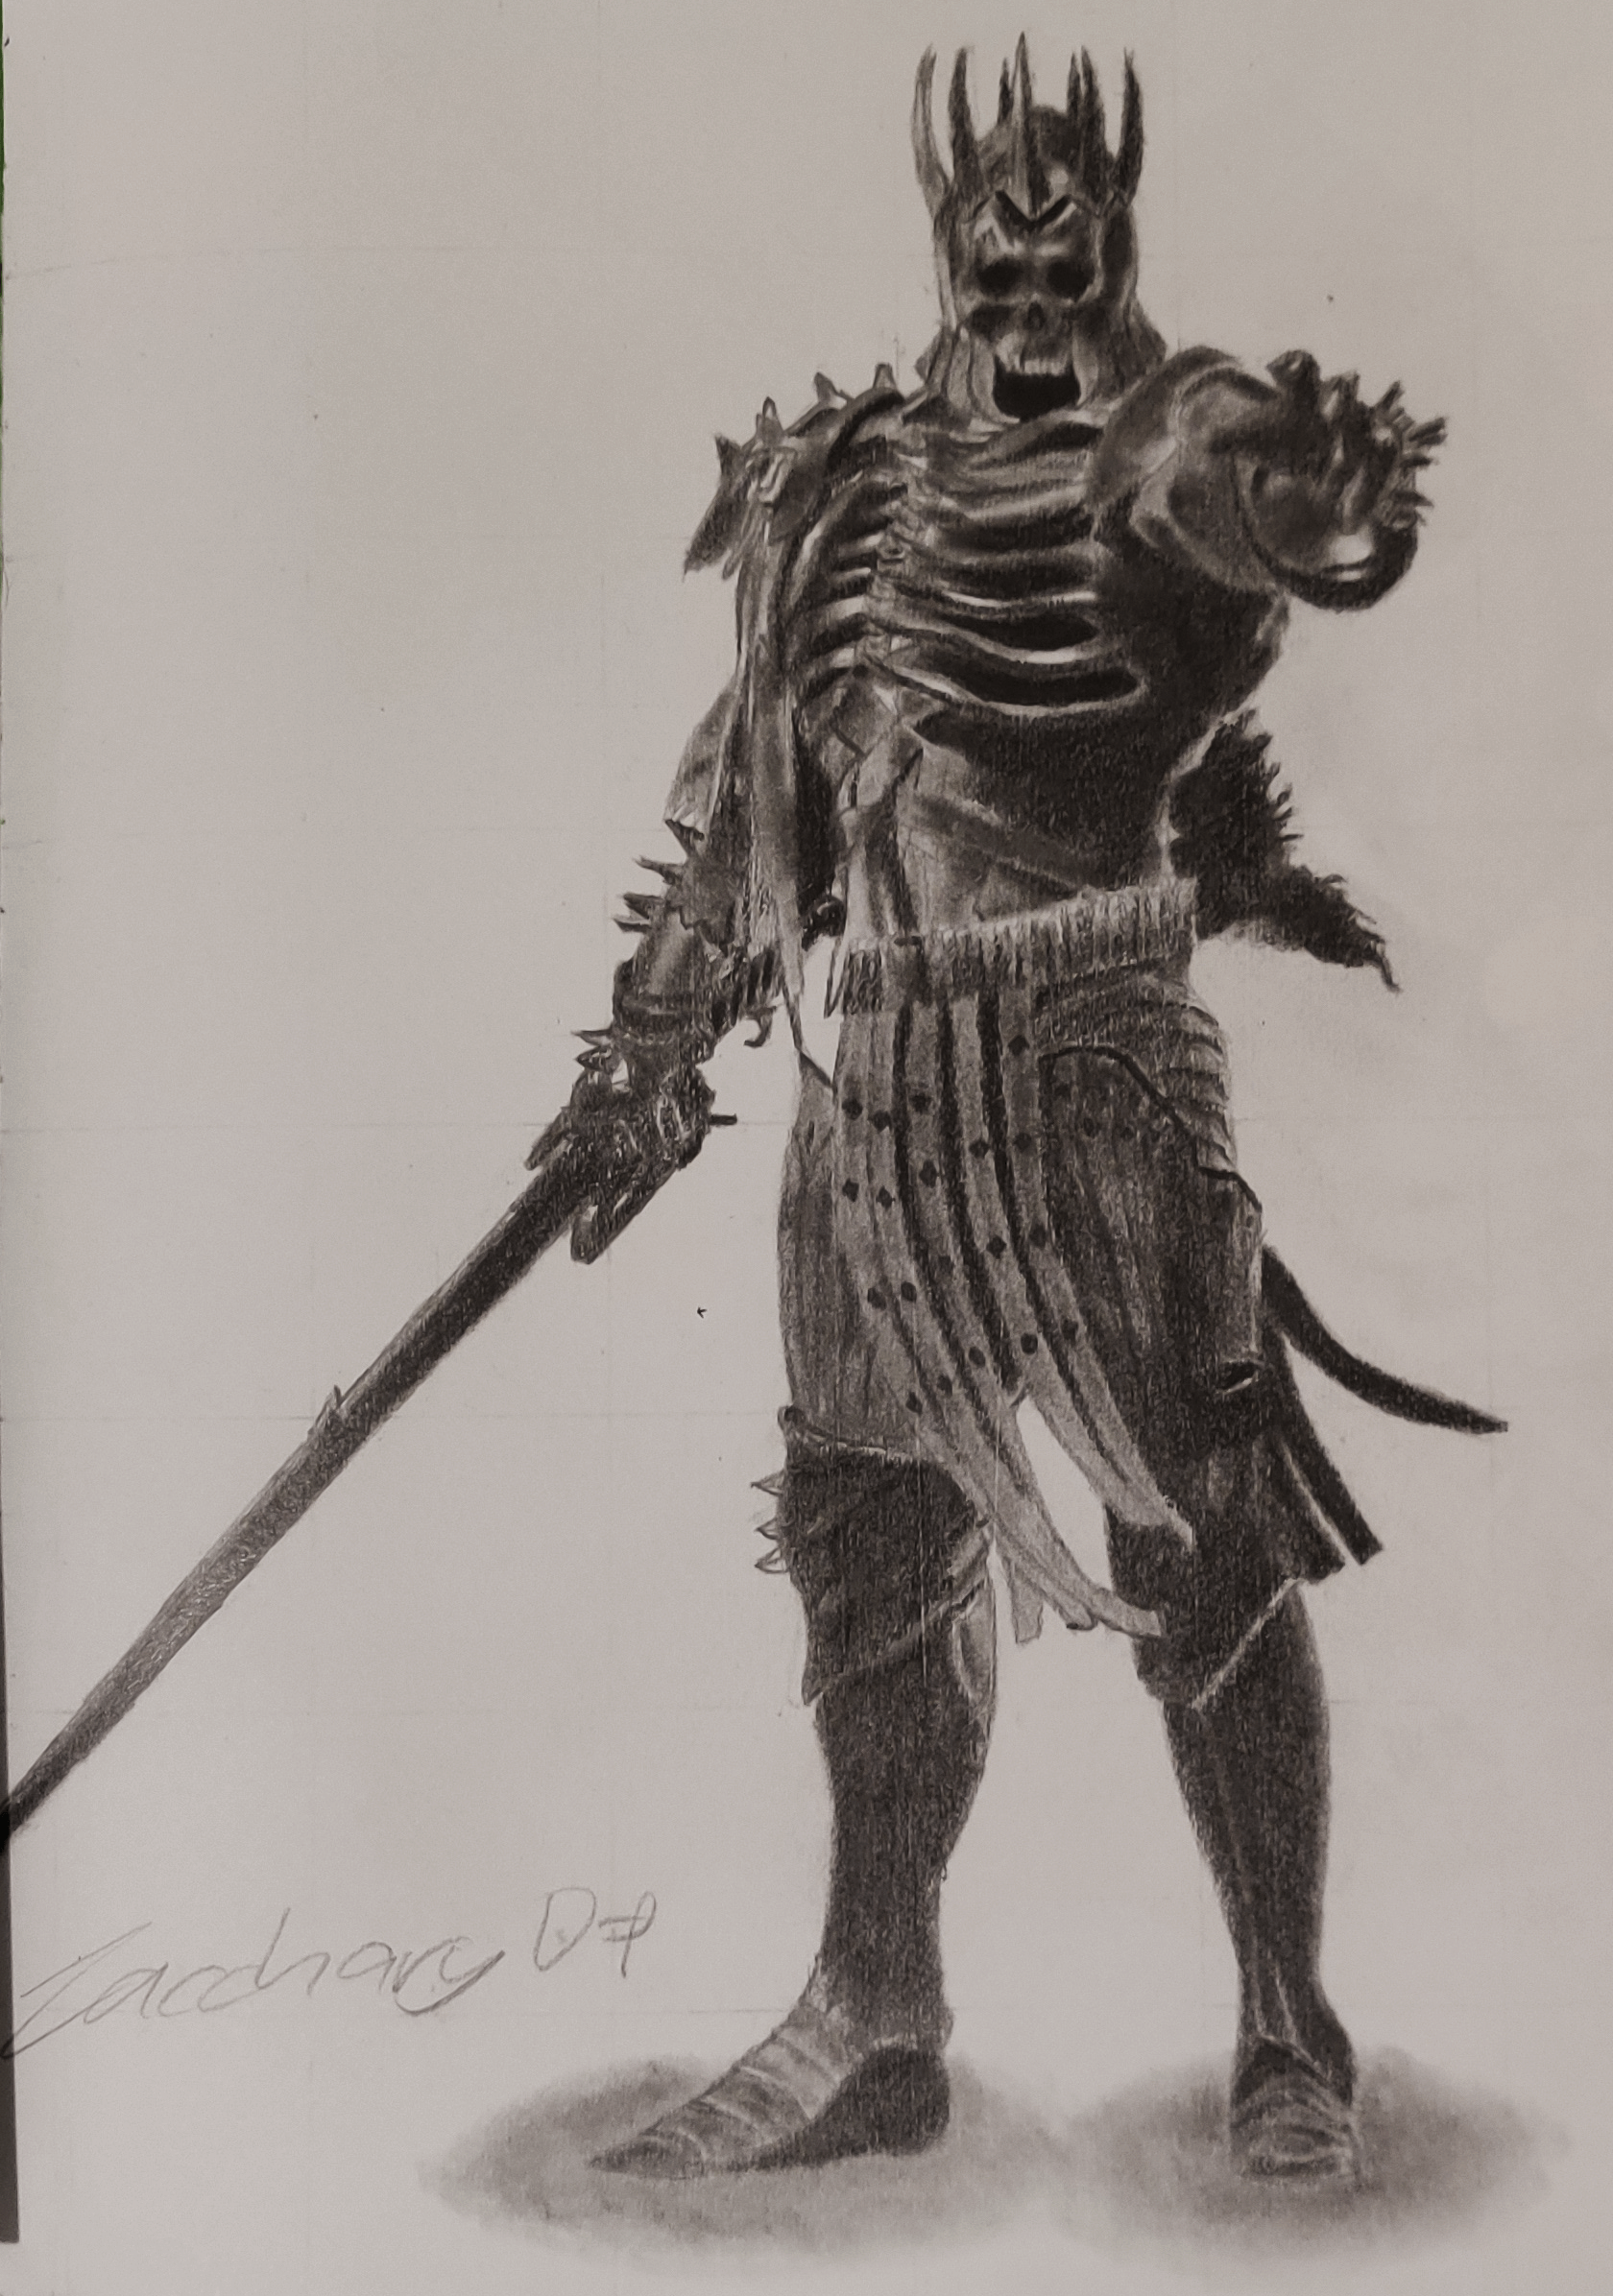 A drawing of the King of the Wild Hunt from 'The Witcher 3: Wild Hunt'.